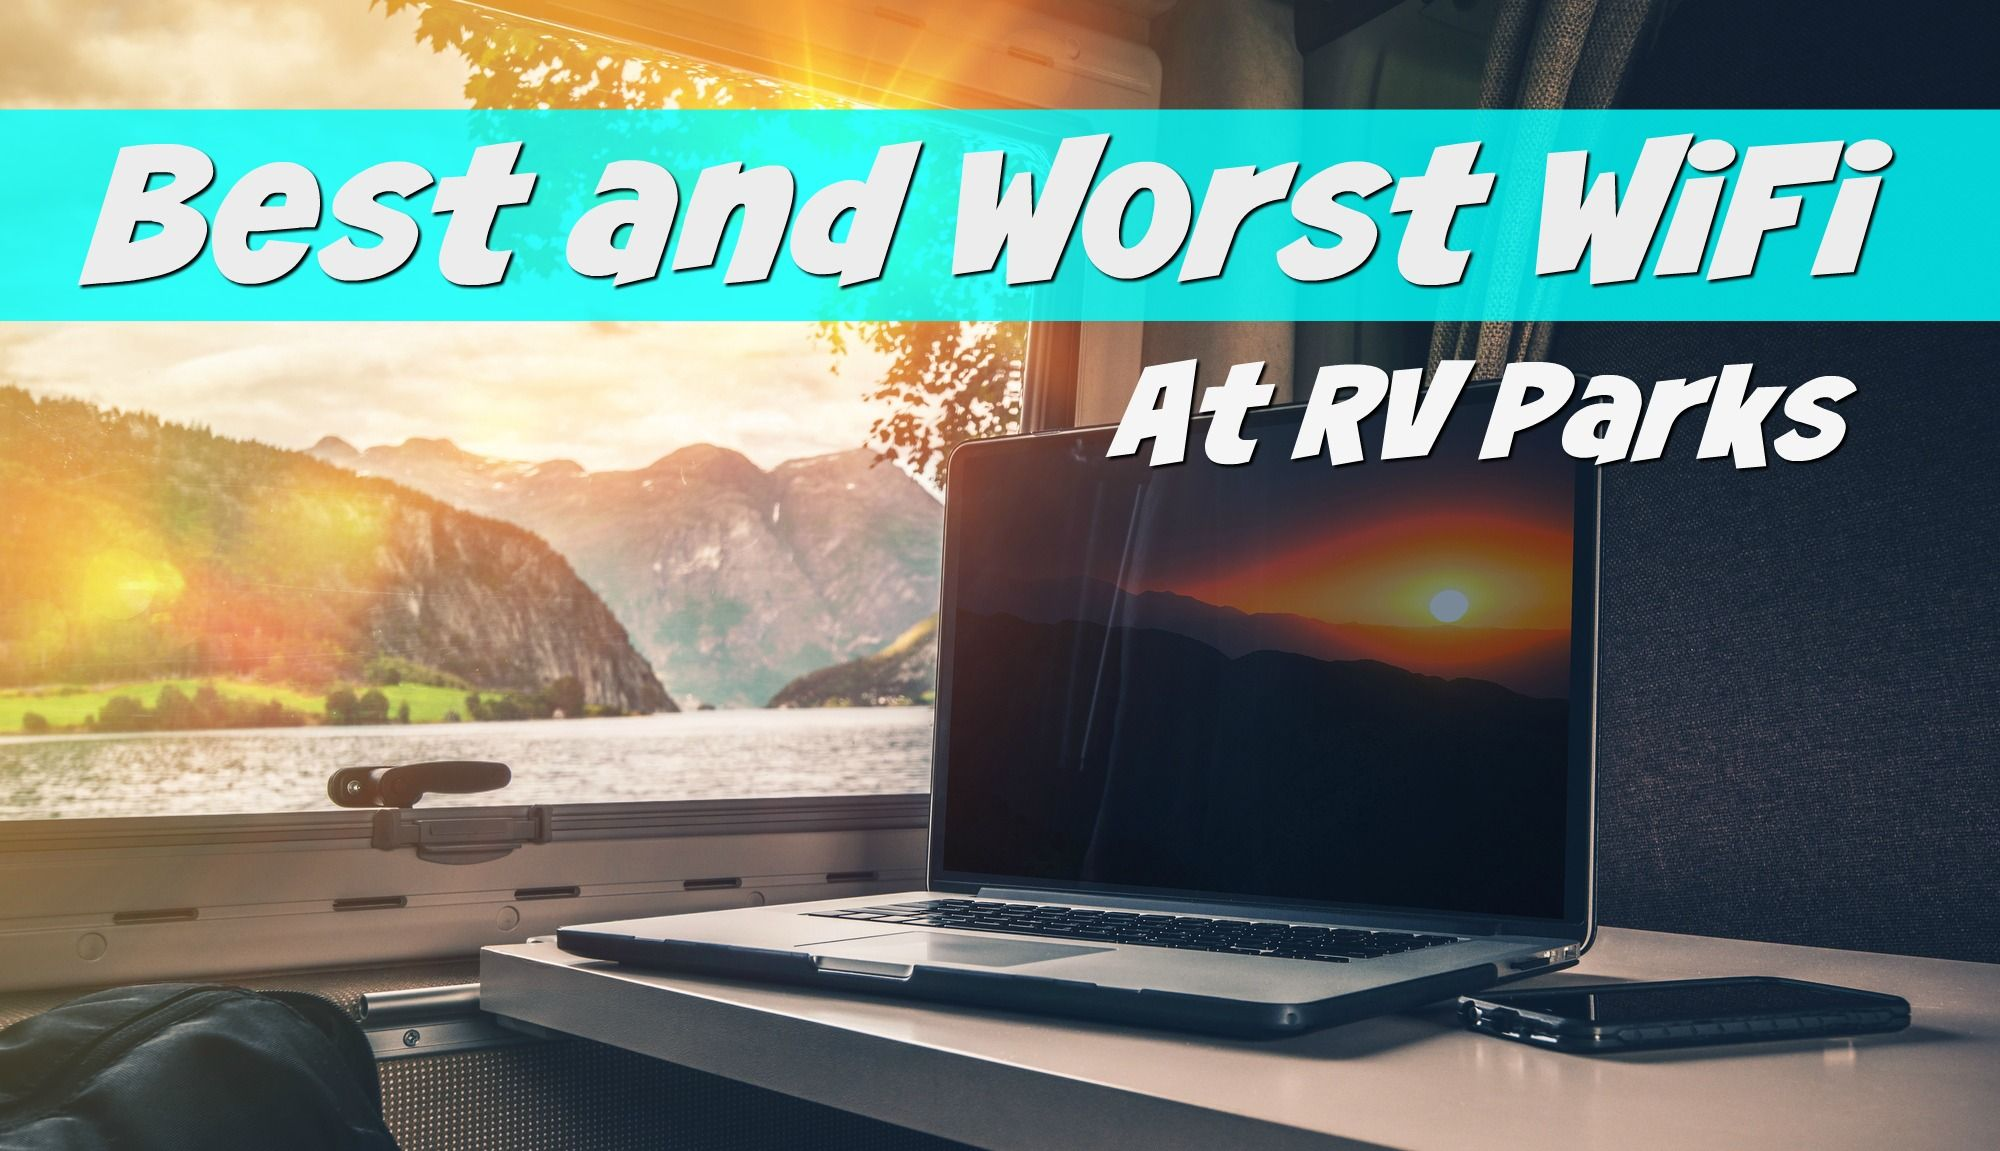 Best and worst wifi at rv parks wifi and rv